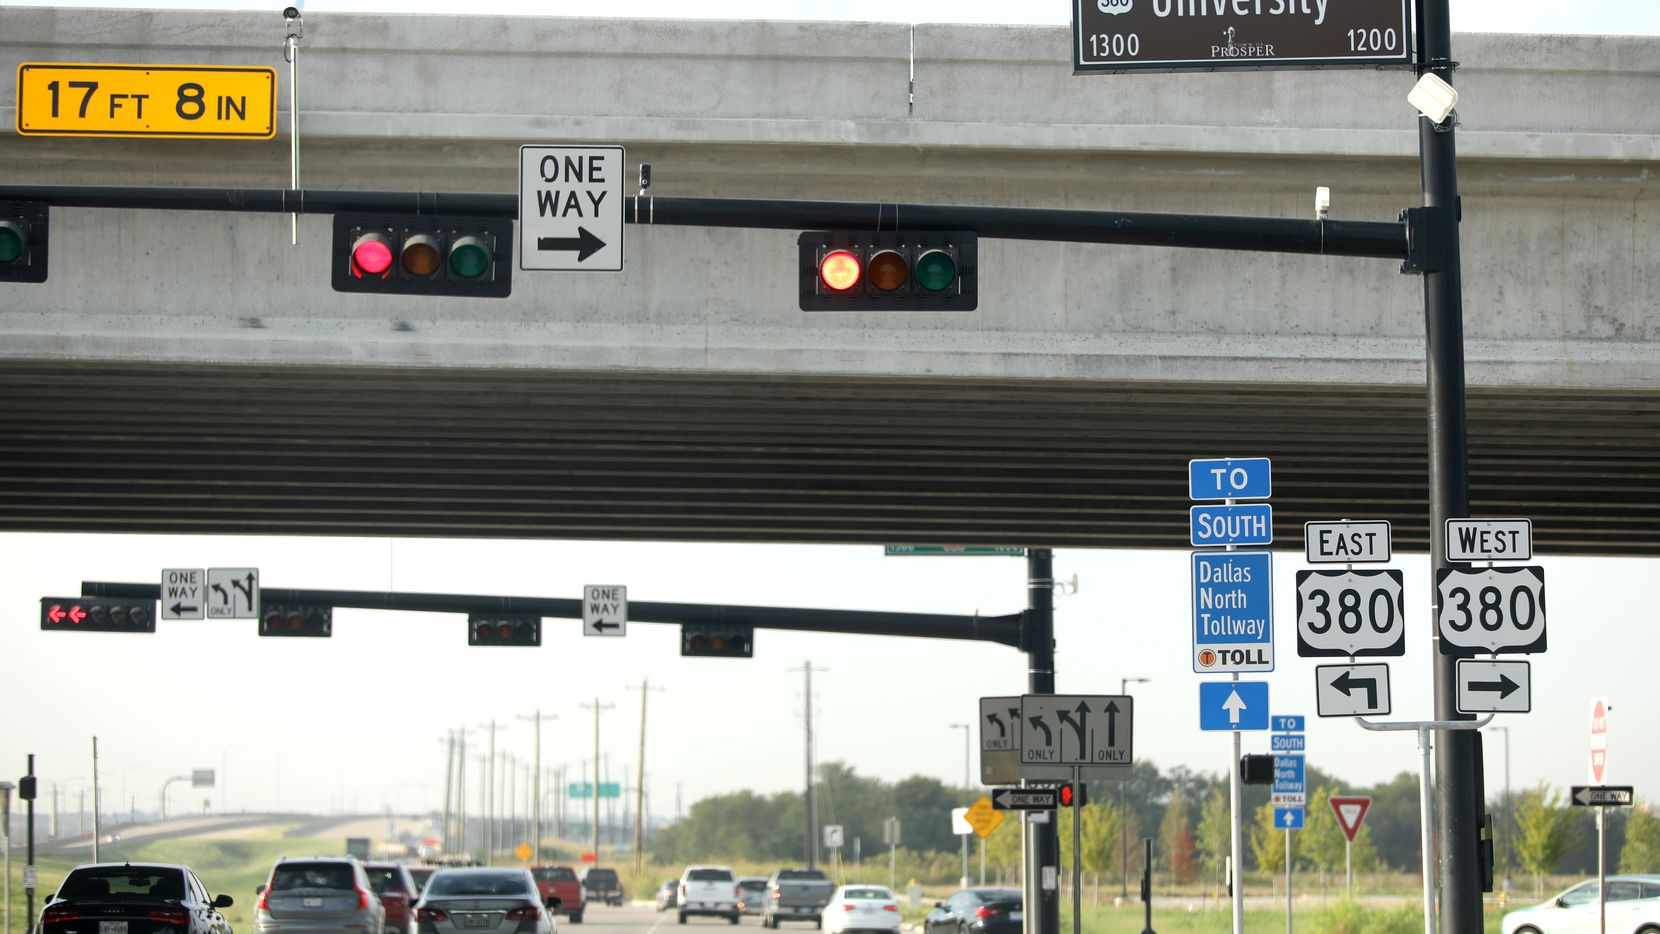 The intersection of the Dallas North Tollway and Highway 380 in Prosper and Frisco, Texas, Thursday, September 5, 2019. This is taken from the northwest corner looking towards the southwest corner.